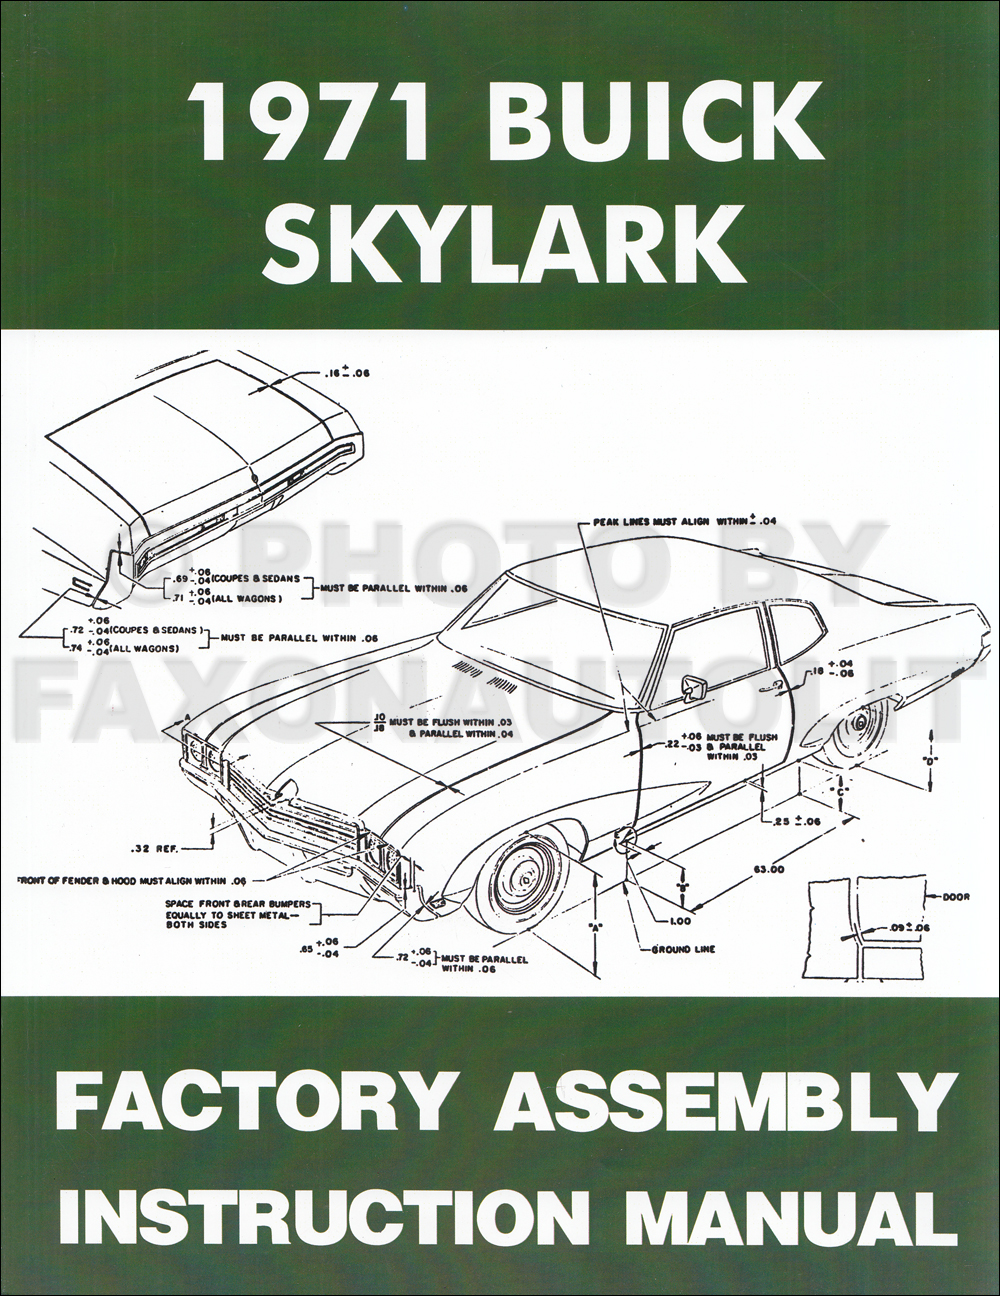 hight resolution of 1971 buick assembly manual reprint skylark gran sport gs sportwagon 1969 buick gs 1971 buick gs wiring diagram